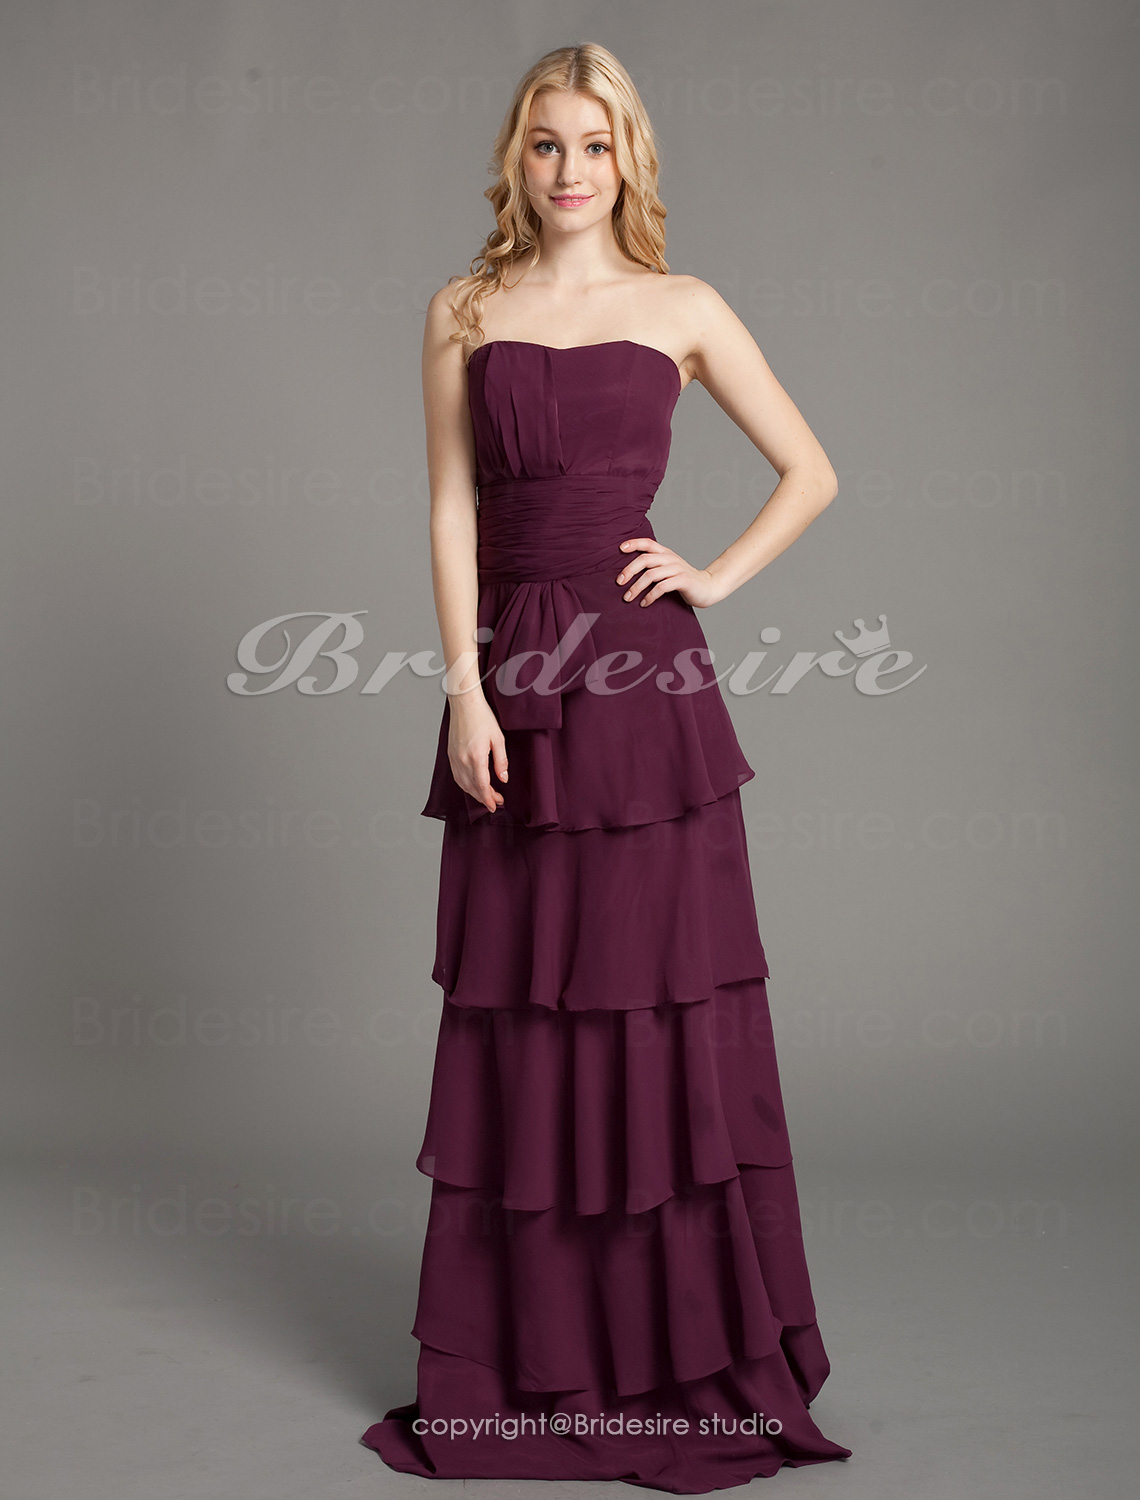 Sheath/ Column Chiffon Floor-length Sweetheart Bridesmaid Dress